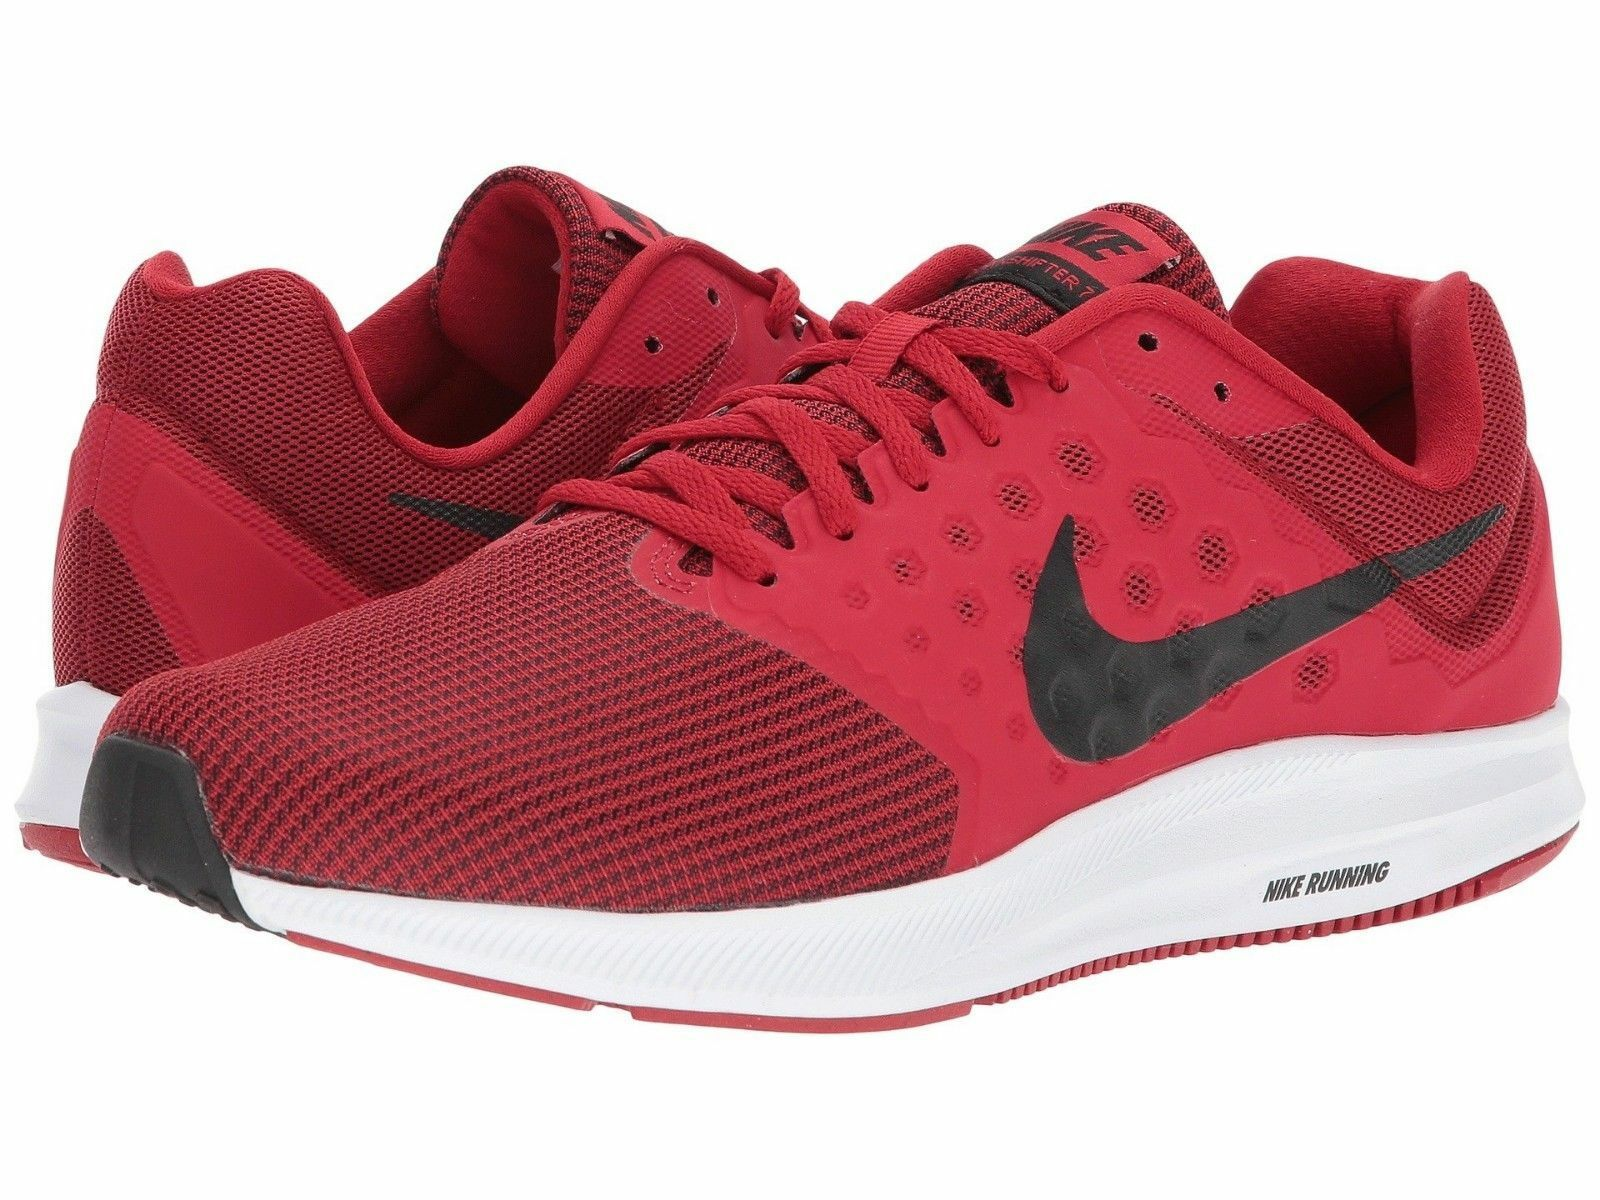 19b90ecf213 ... NIKE DOWNSHIFTER DOWNSHIFTER DOWNSHIFTER 7 MEN S 9.5 Gym Red Black White  852459-602 Running Shoes ...